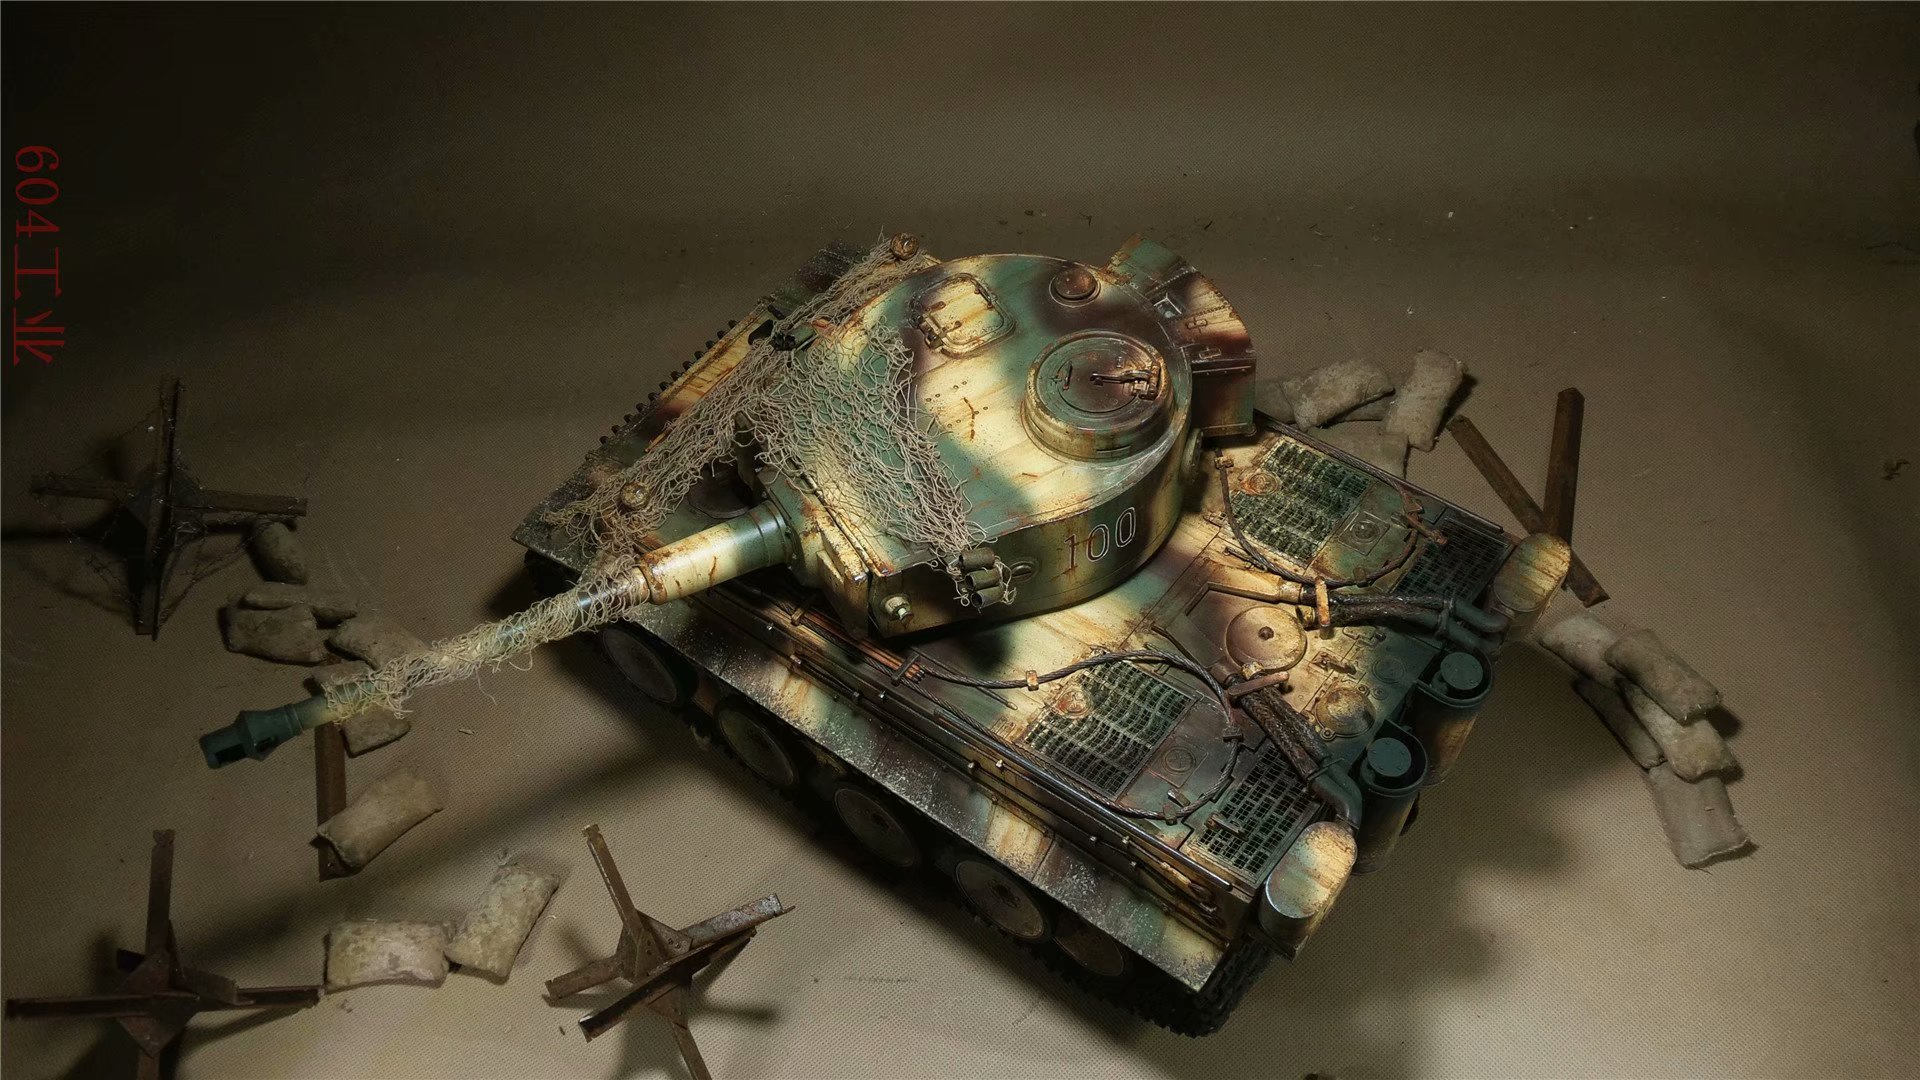 Mato Toys 1220 Tiger 1 Full Metal Remote Control Tank, 1/16 Scale  Model Alloy Tiger I RC Tank.